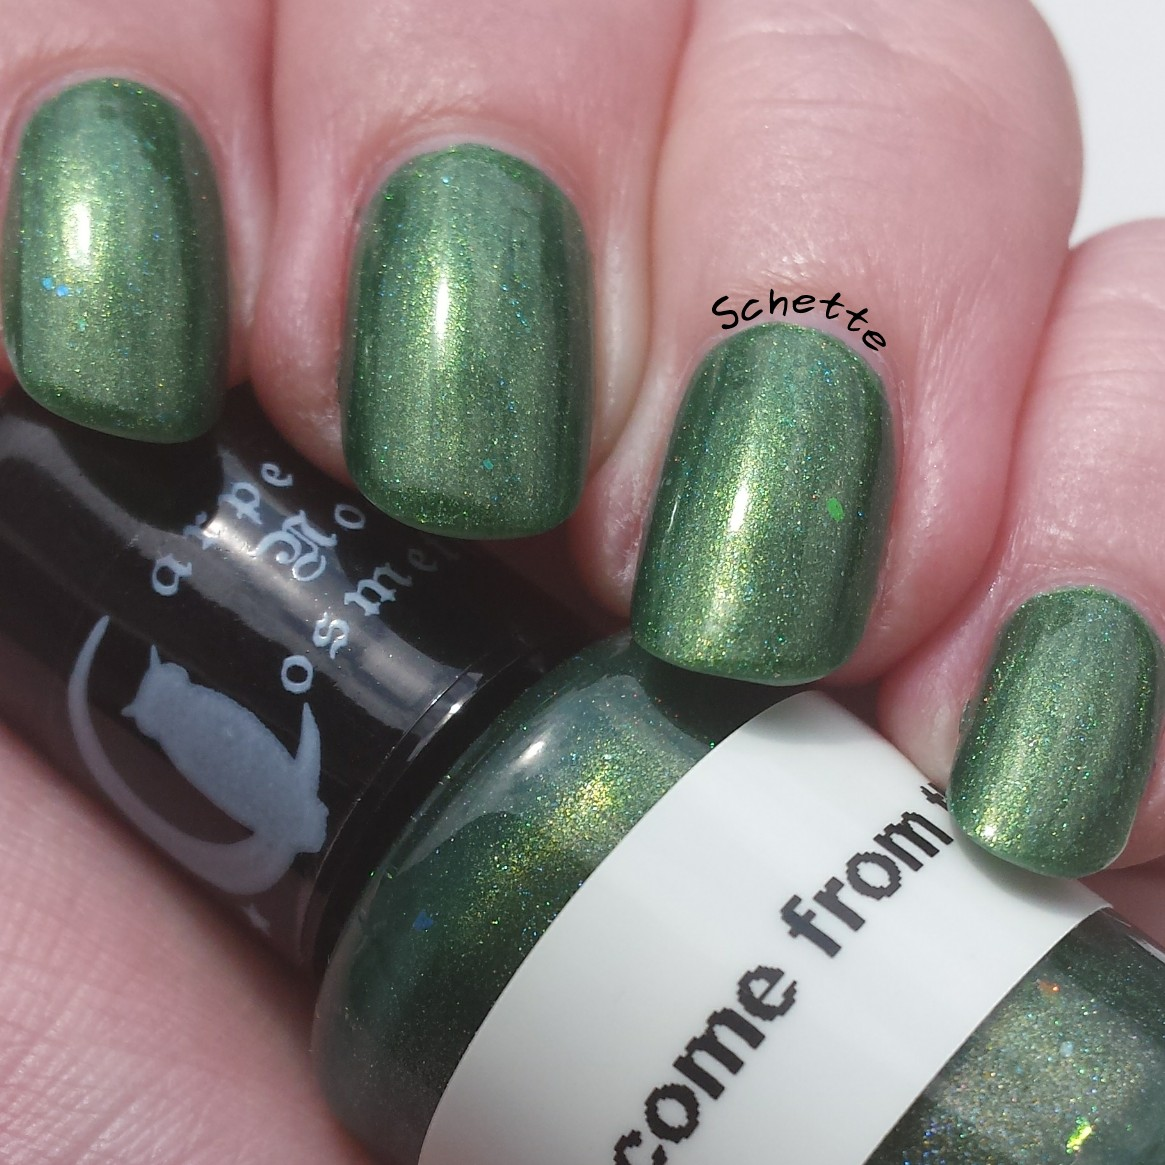 Carpe Noctem Cosmetics - I come from the forest, Bad faerie